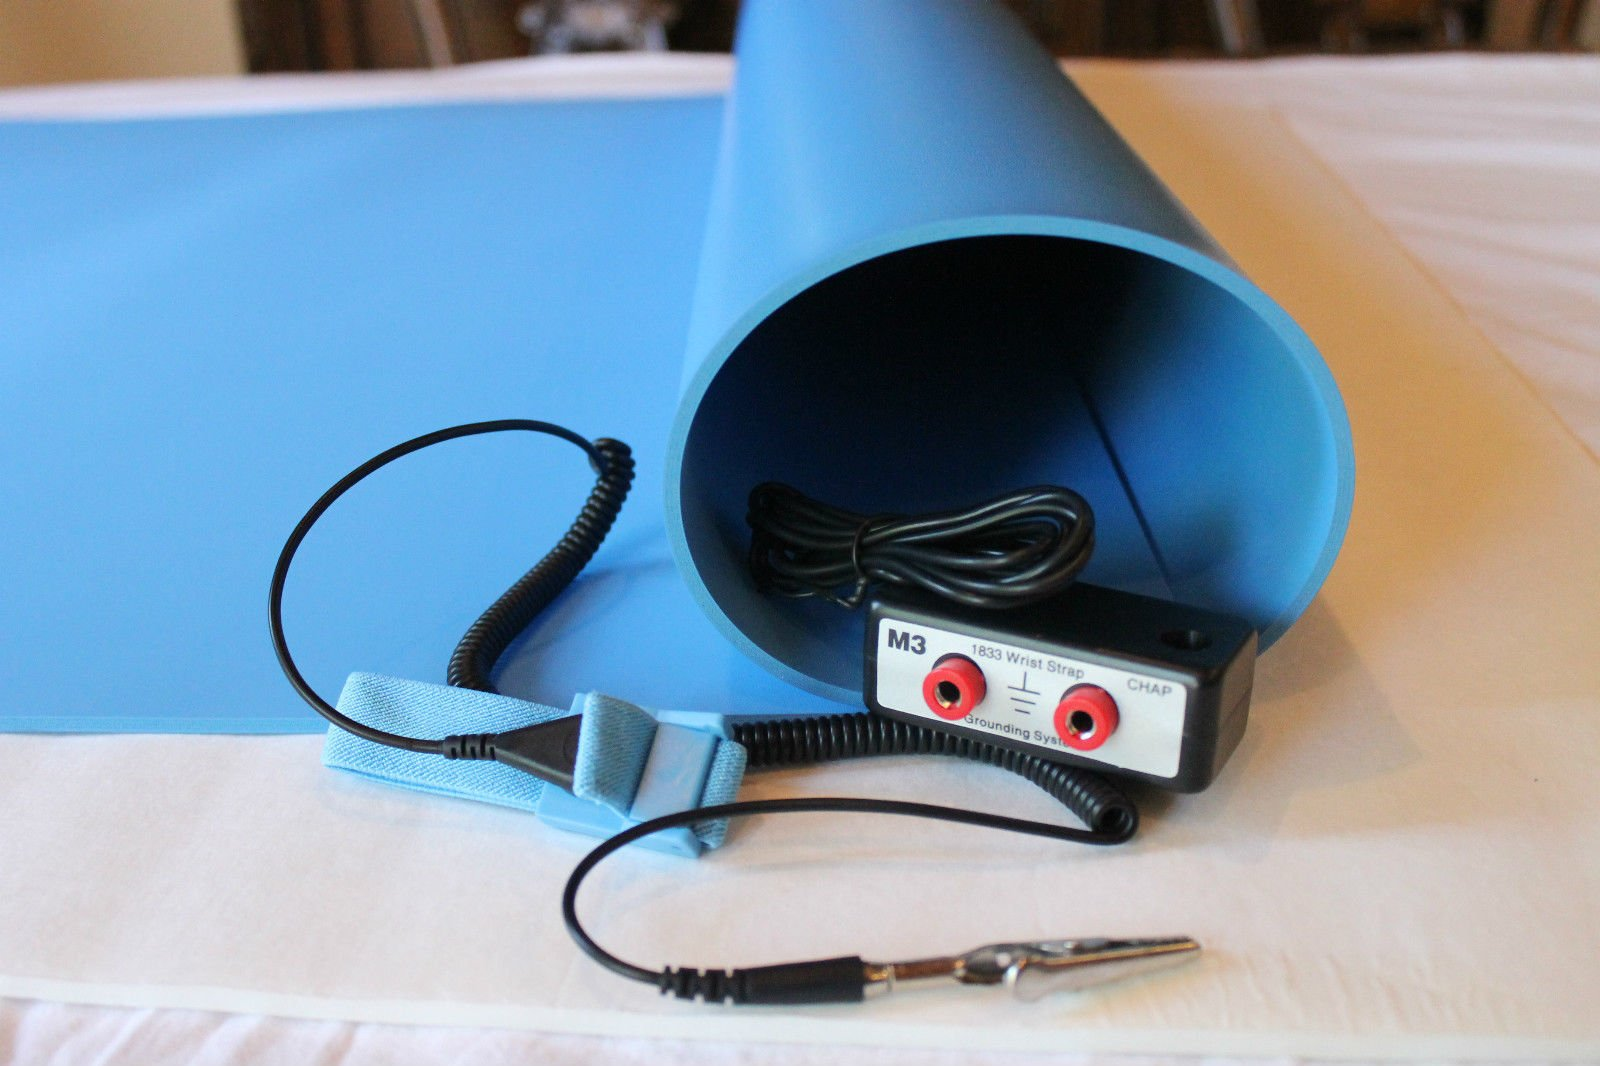 3 Layer ESD Anti Static Vinyl Mat Kit with Dual Bench Grounding/Wrist Strap (24'' x 48'') - Blue